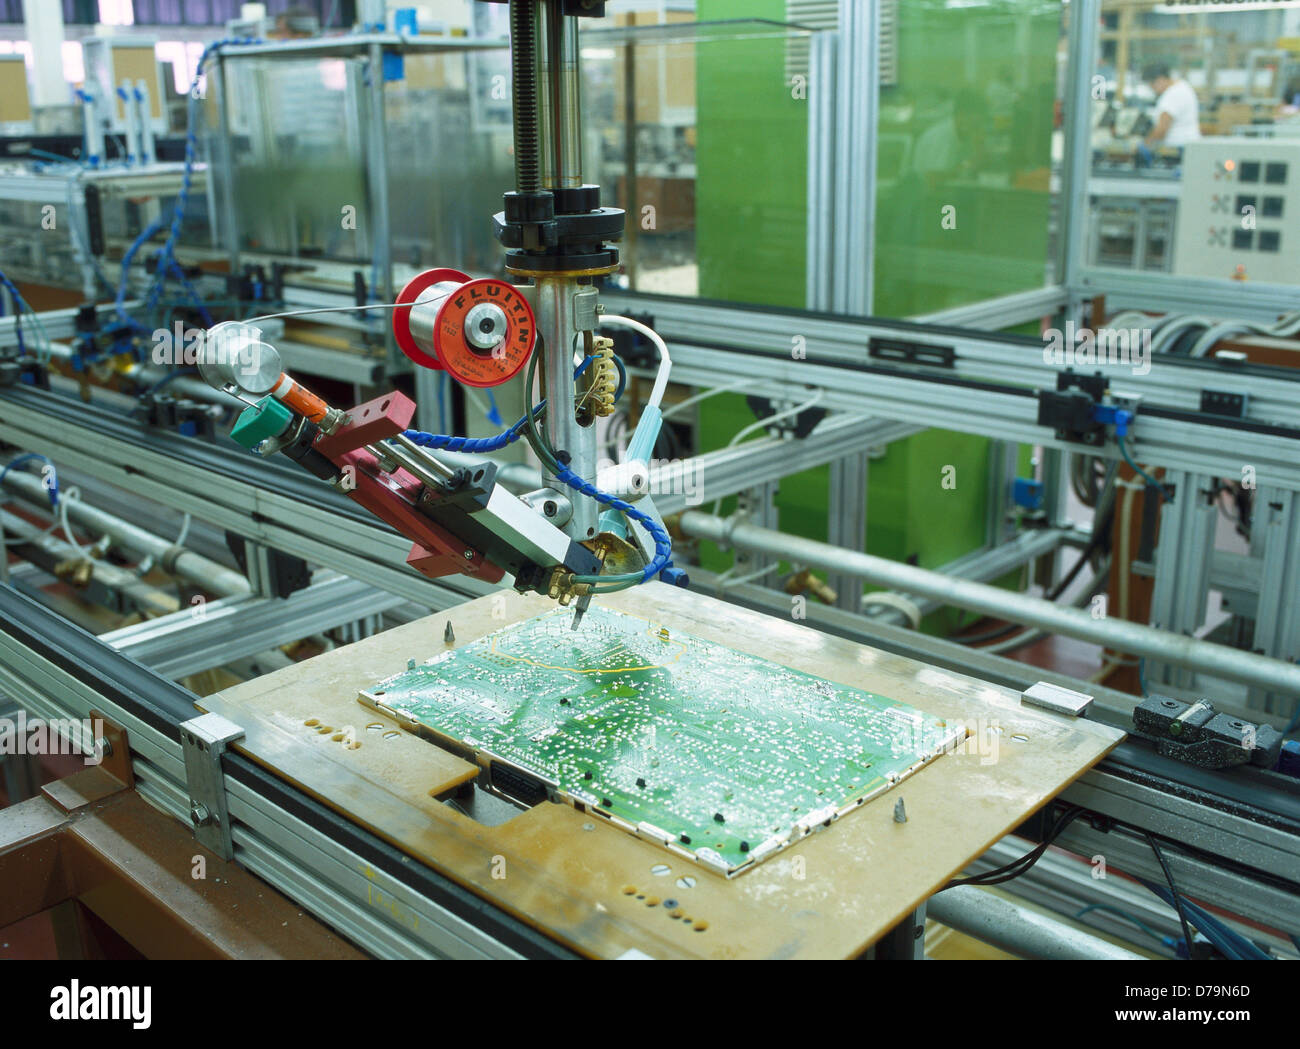 Circuit Board Manufacture Printed Assembly By Robot